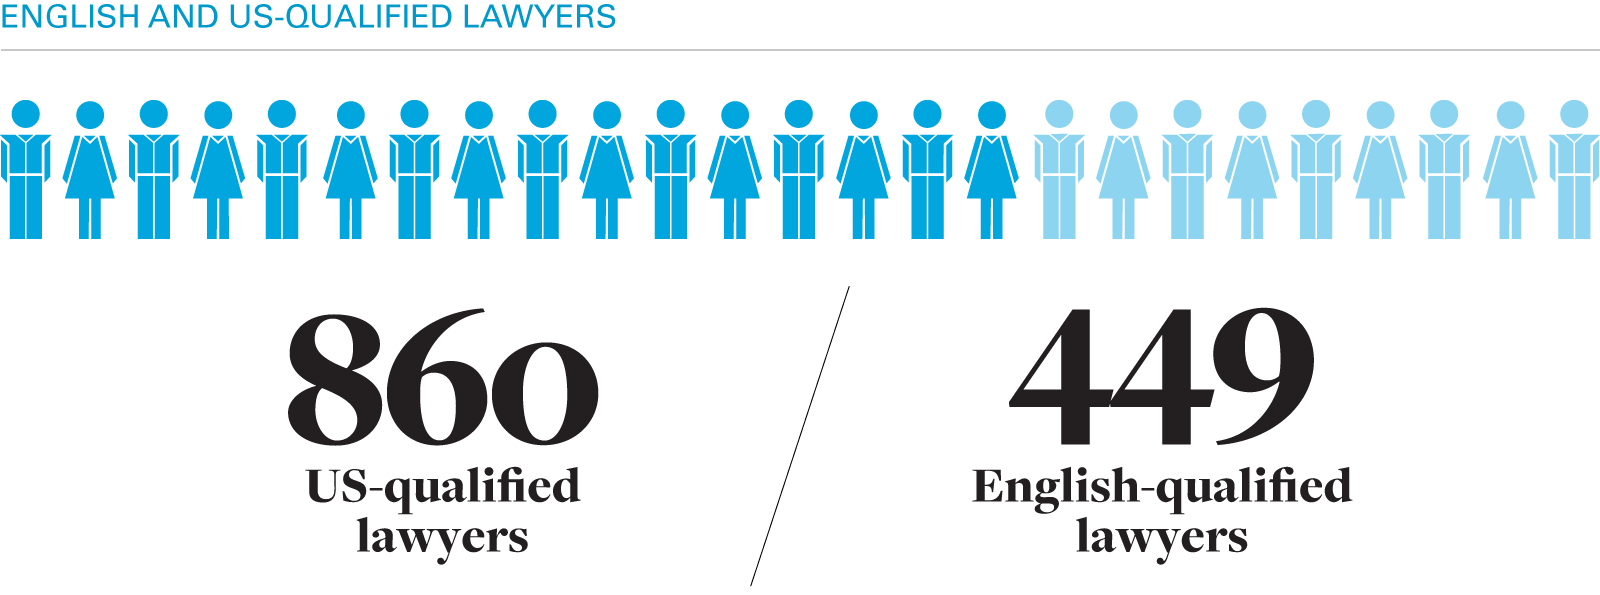 860 US-qualified lawyers & 449 English-qualified lawyers